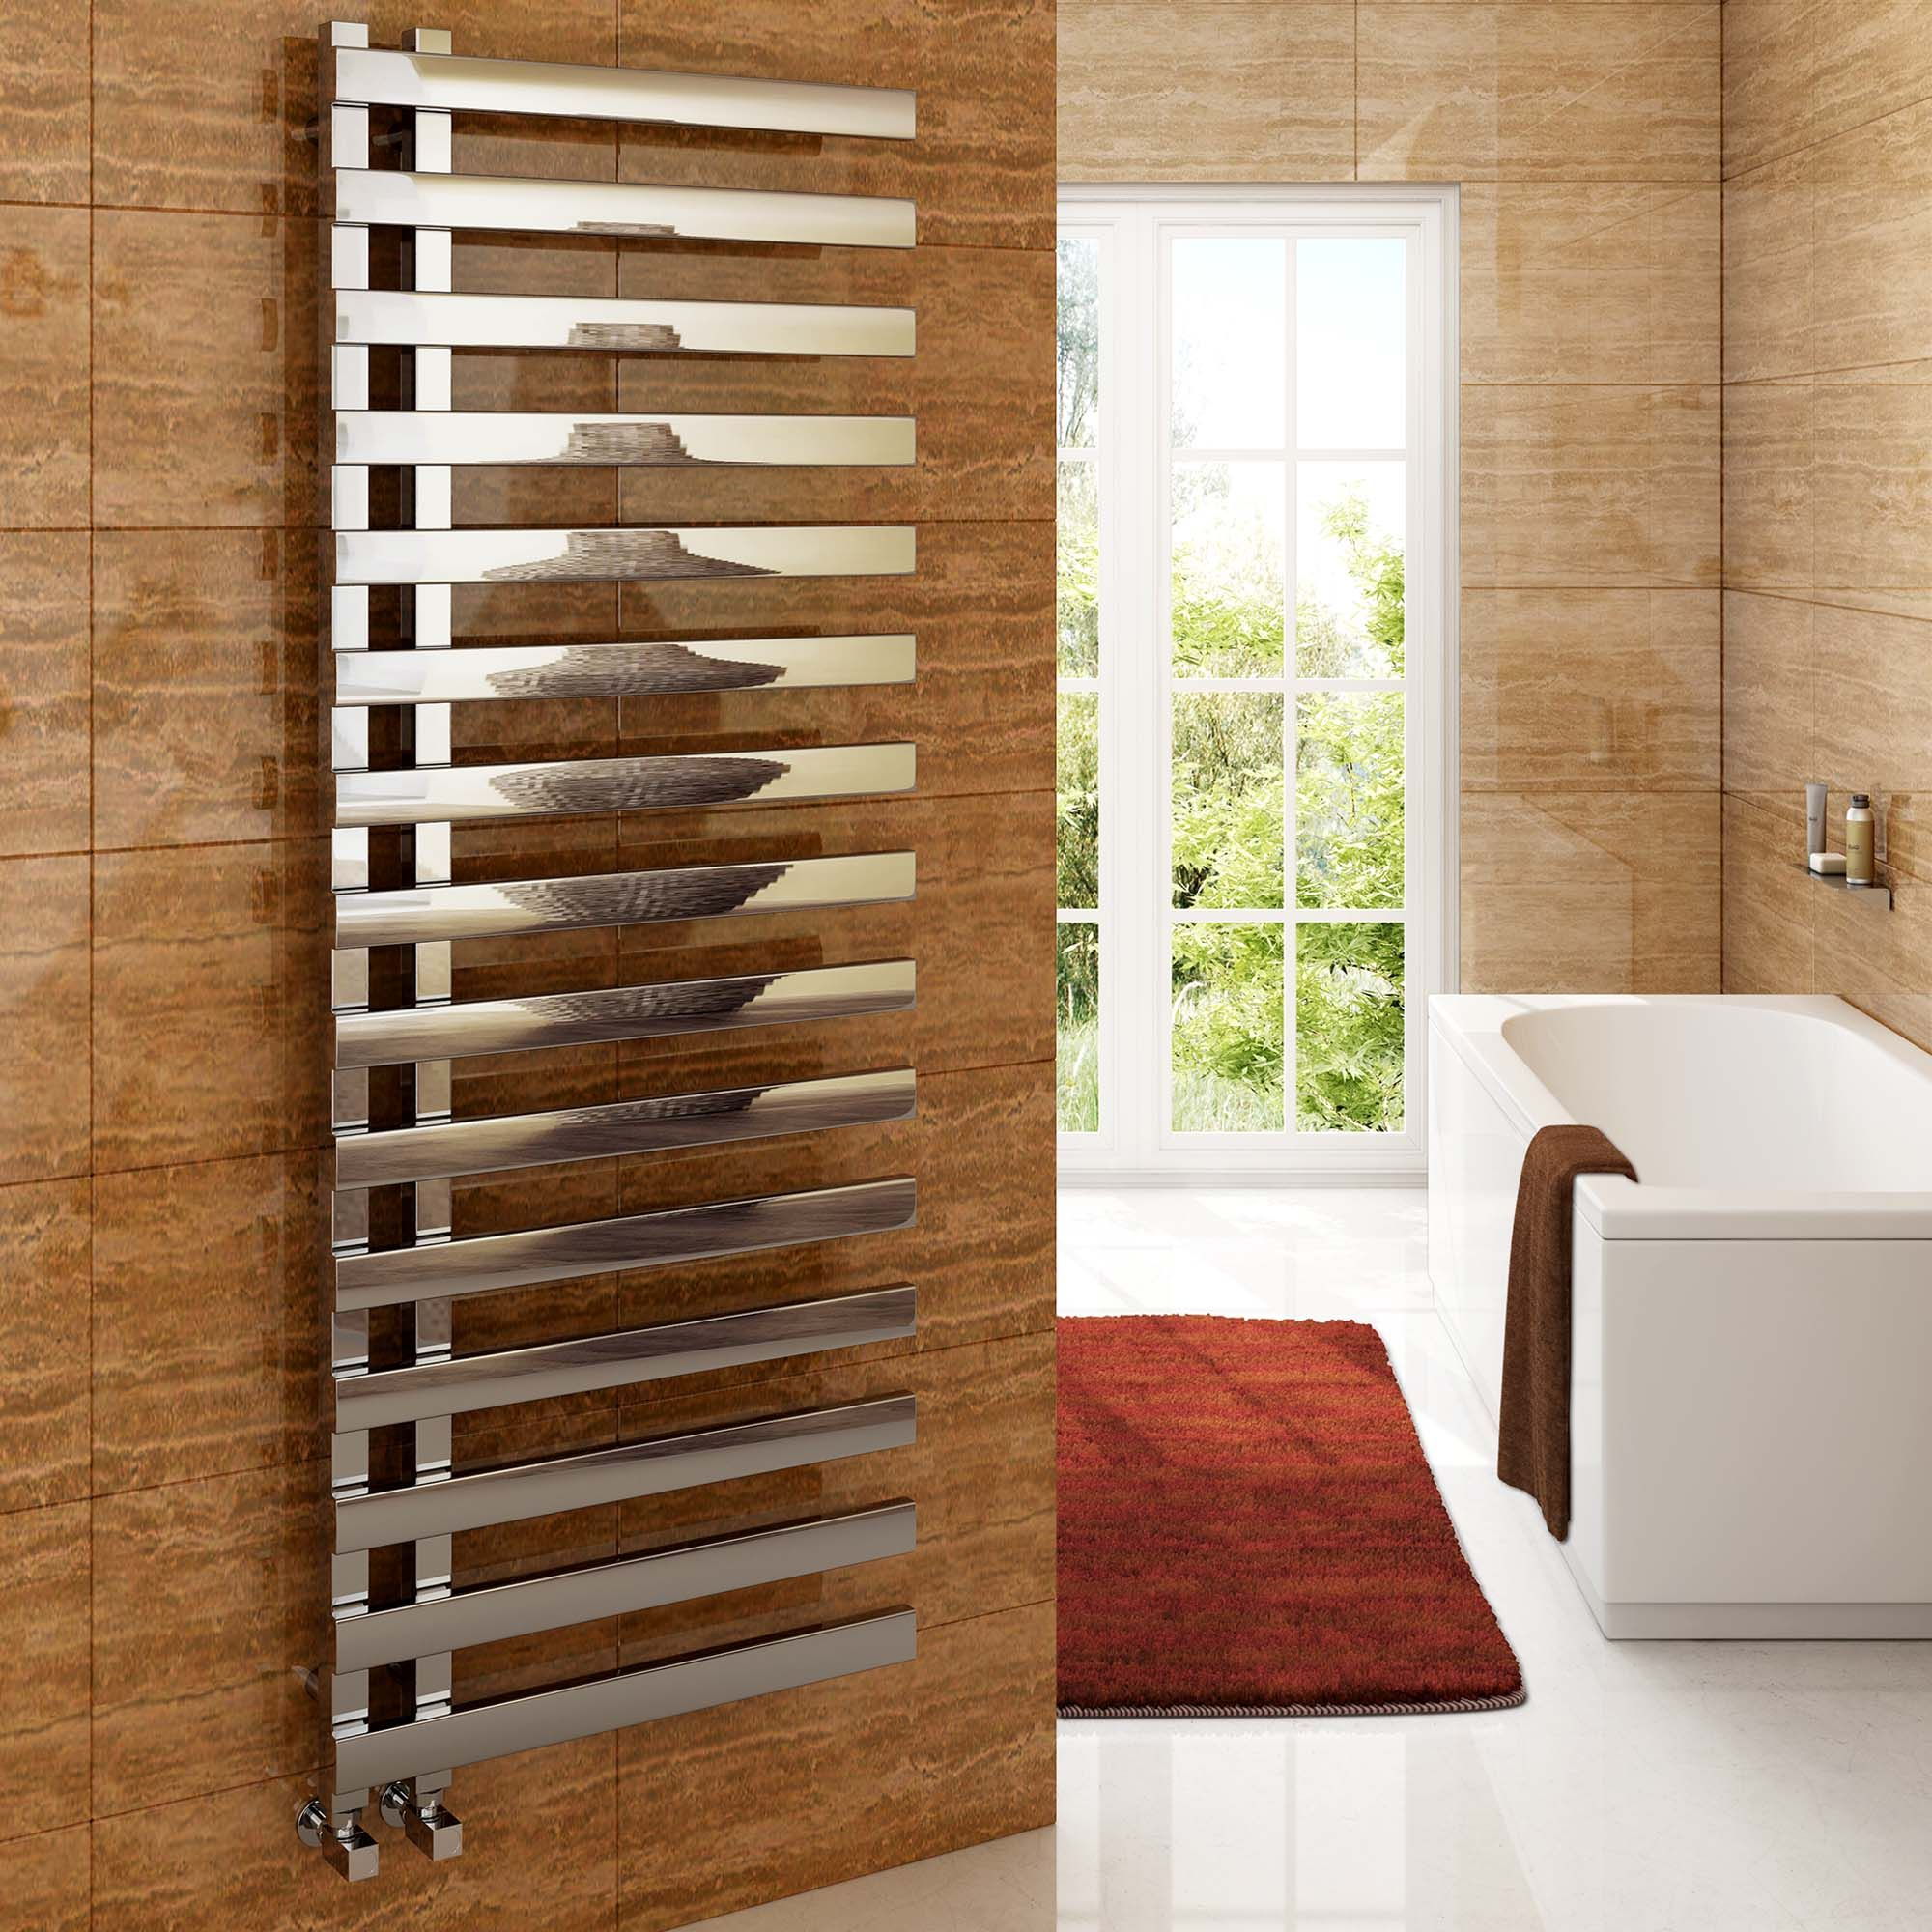 Natasha ladder rail straight modern electric towel radiator in chrome - Our Selection Of Heated Designer Towel Rails Not Only Includes Some Top Range Styles But Also Allows You To Use The Radiators All Year Round To Keep Your